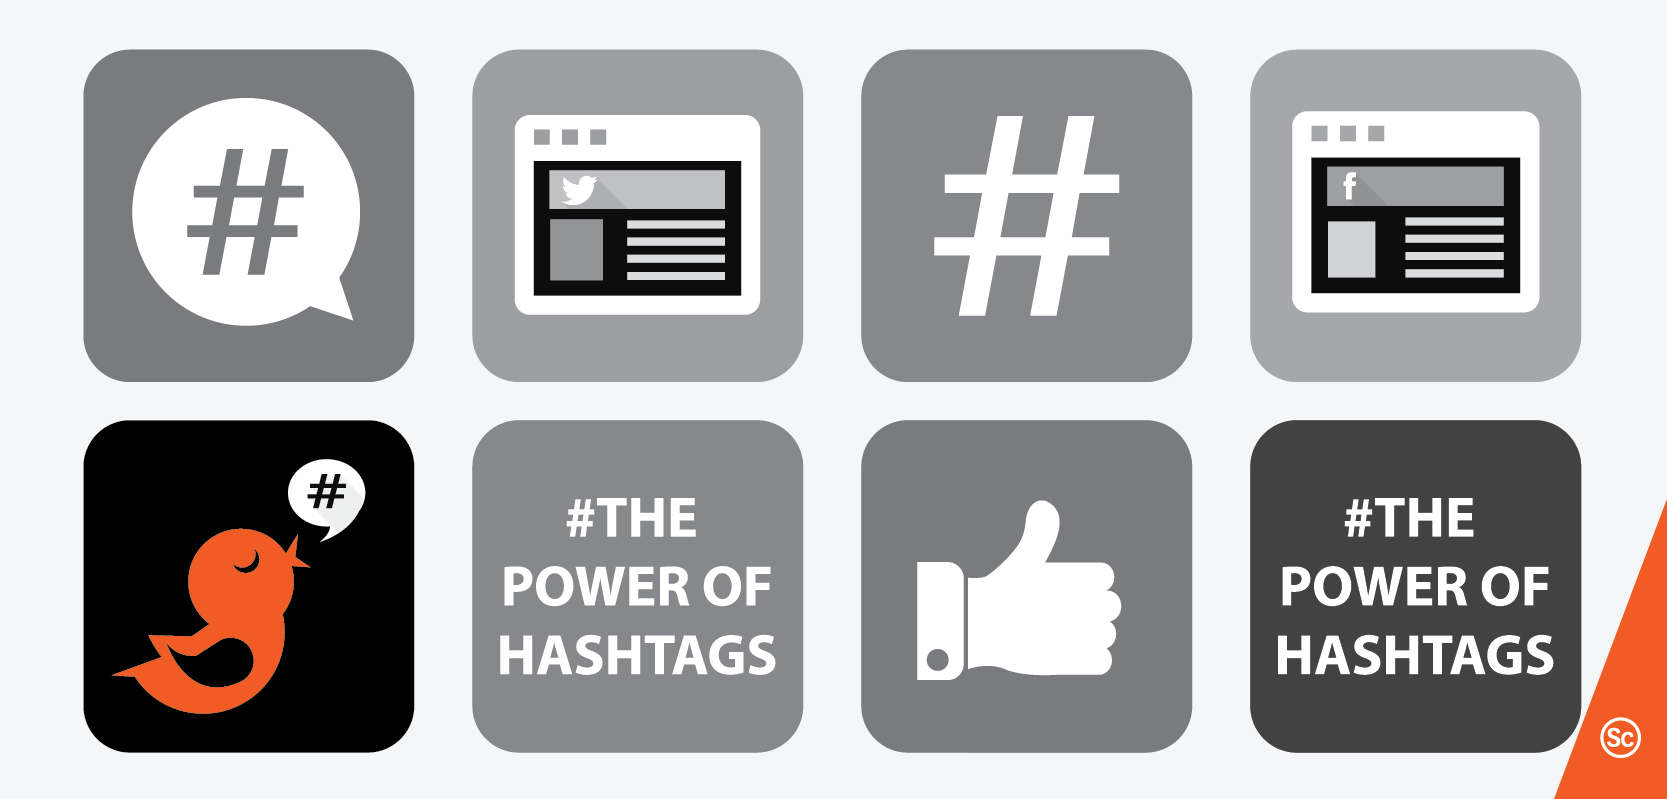 How to make the best of your event hashtag